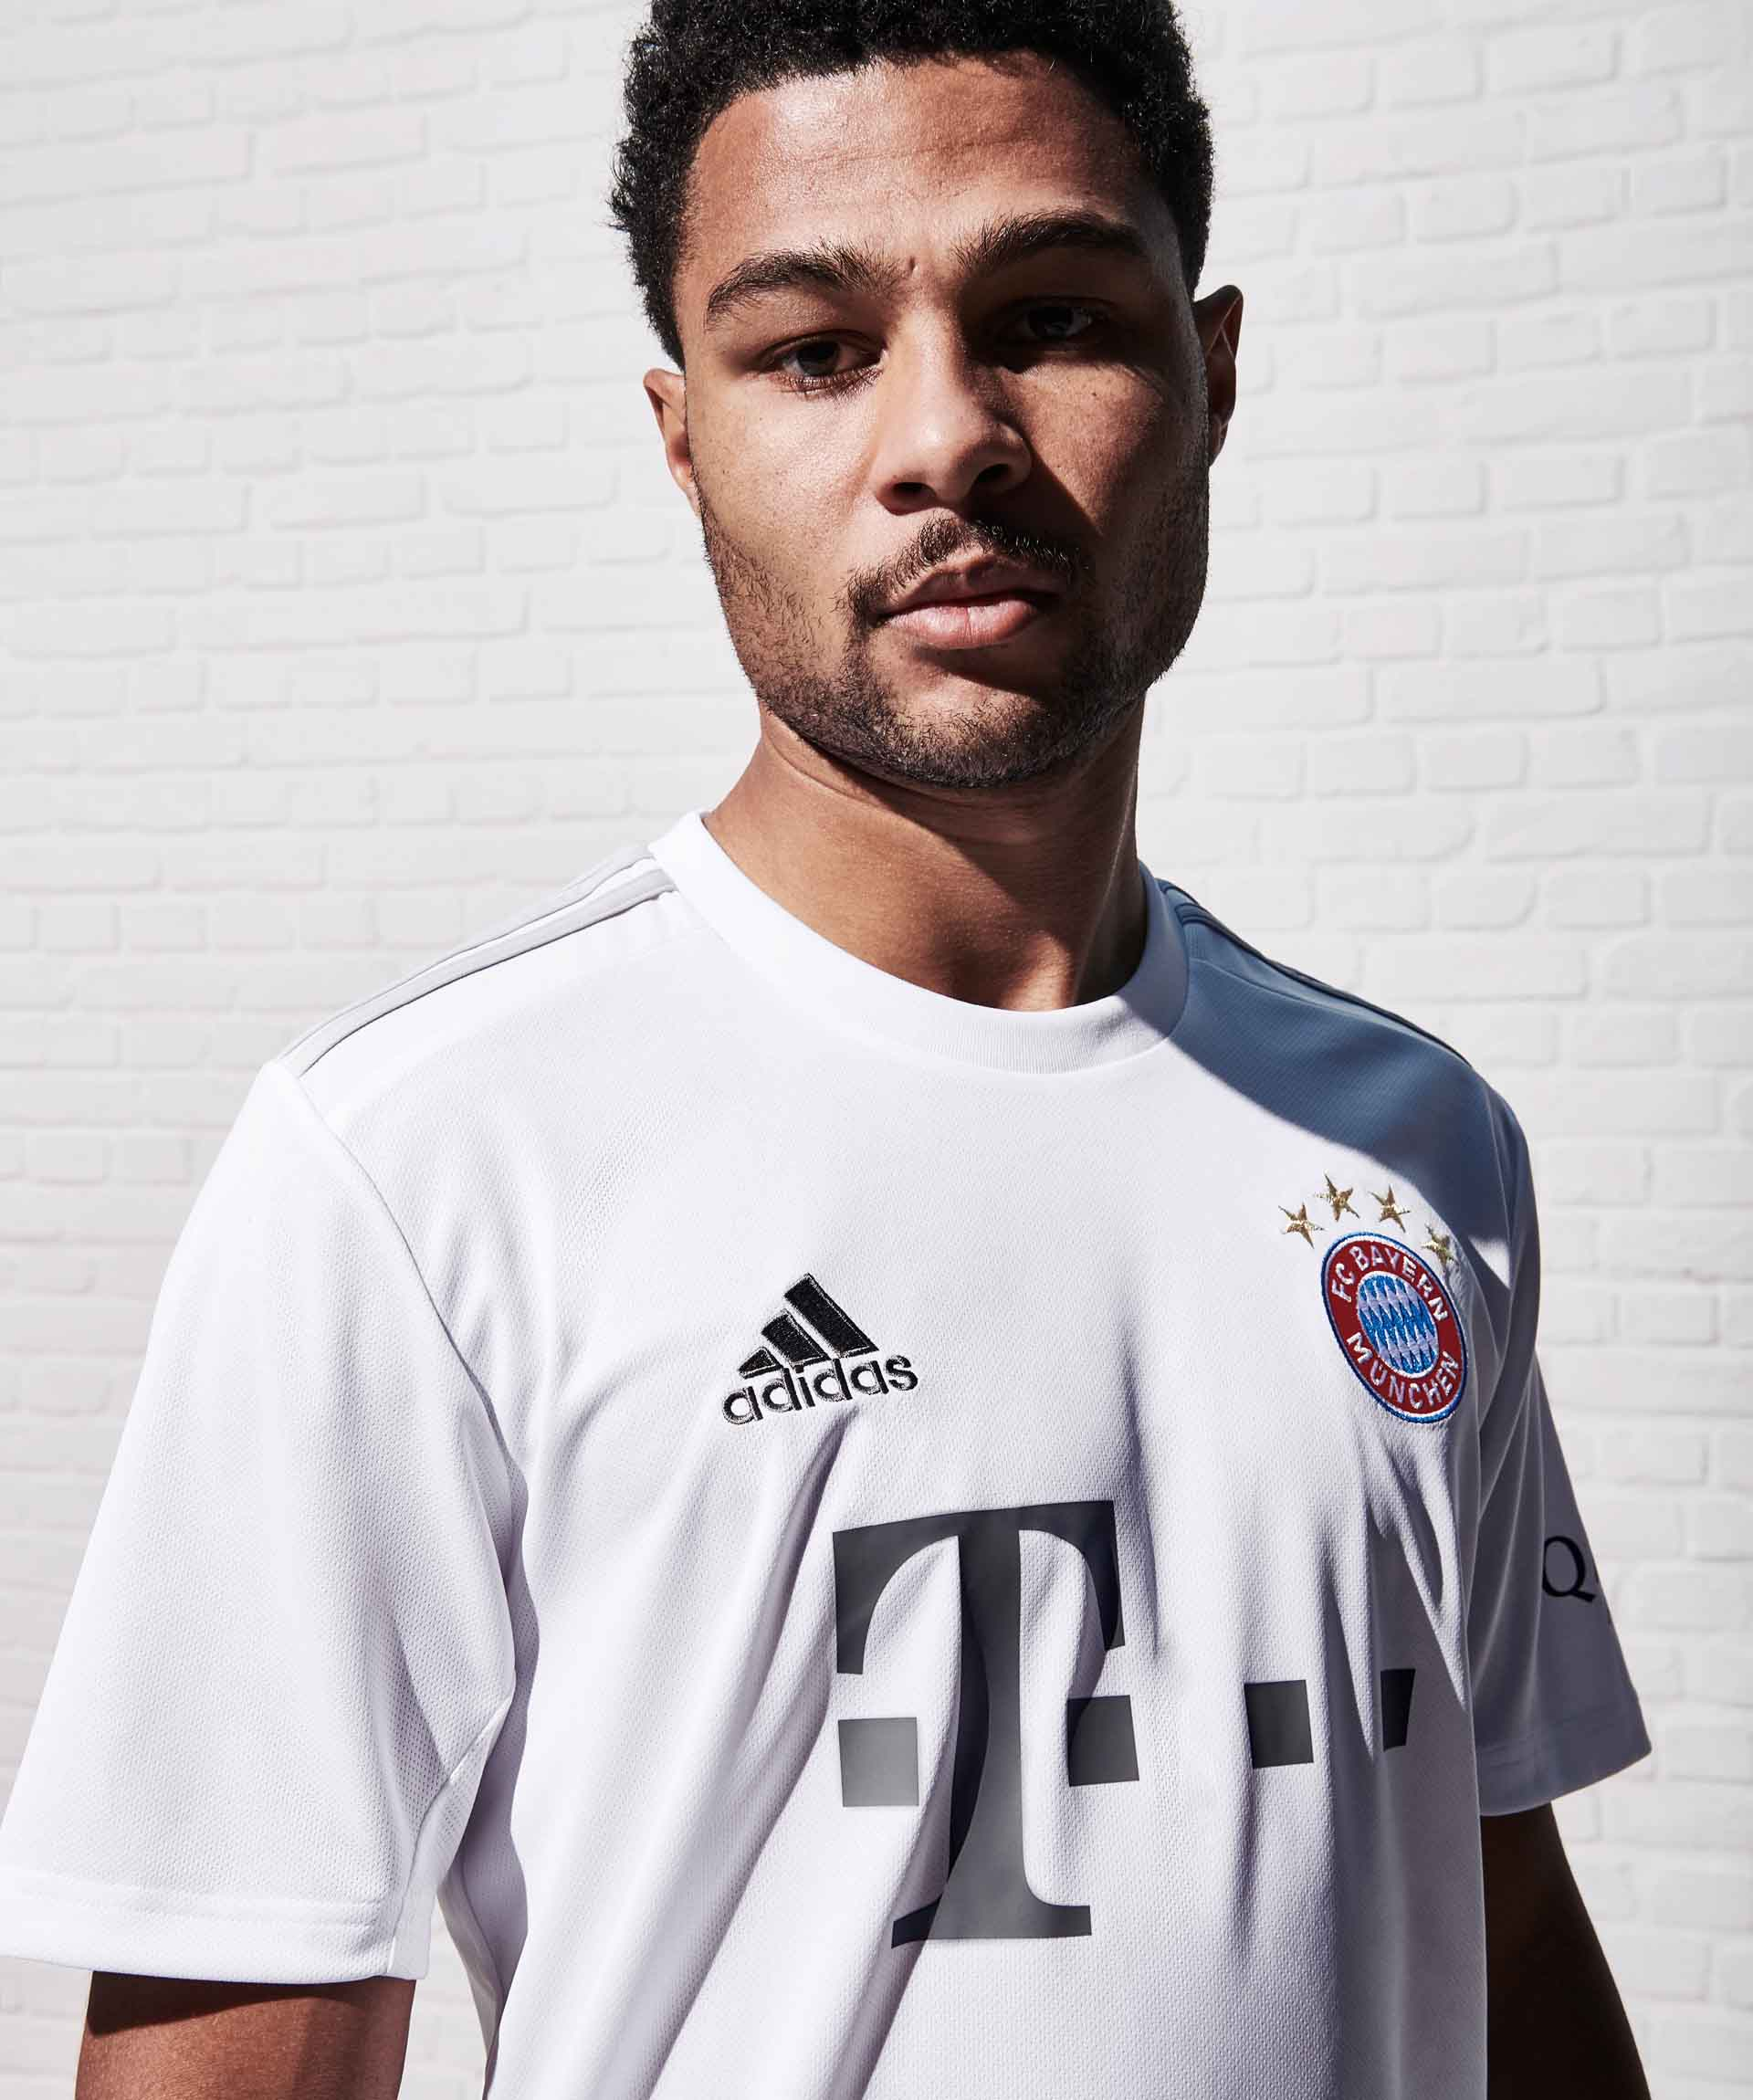 online store 48c59 3fb0a adidas Launch Bayern Munich 2019/20 Away Shirt - SoccerBible